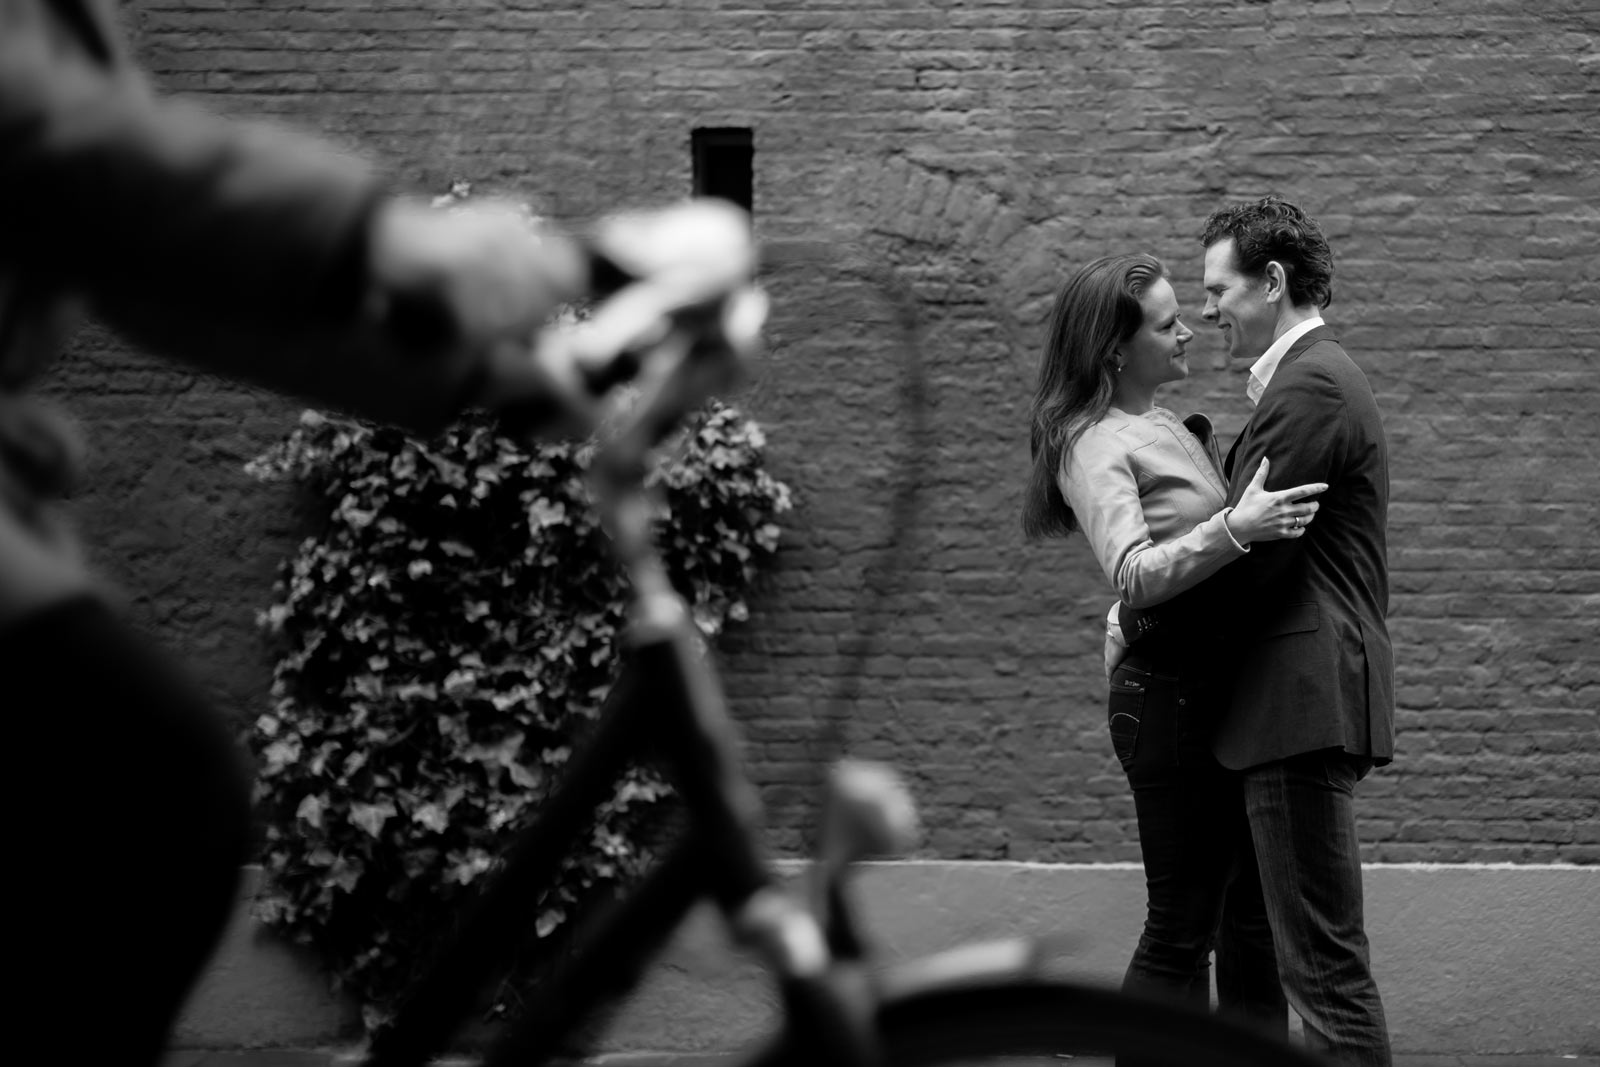 Loveshoot-engagement-prewedding-Zwolle-Fotograaf-01